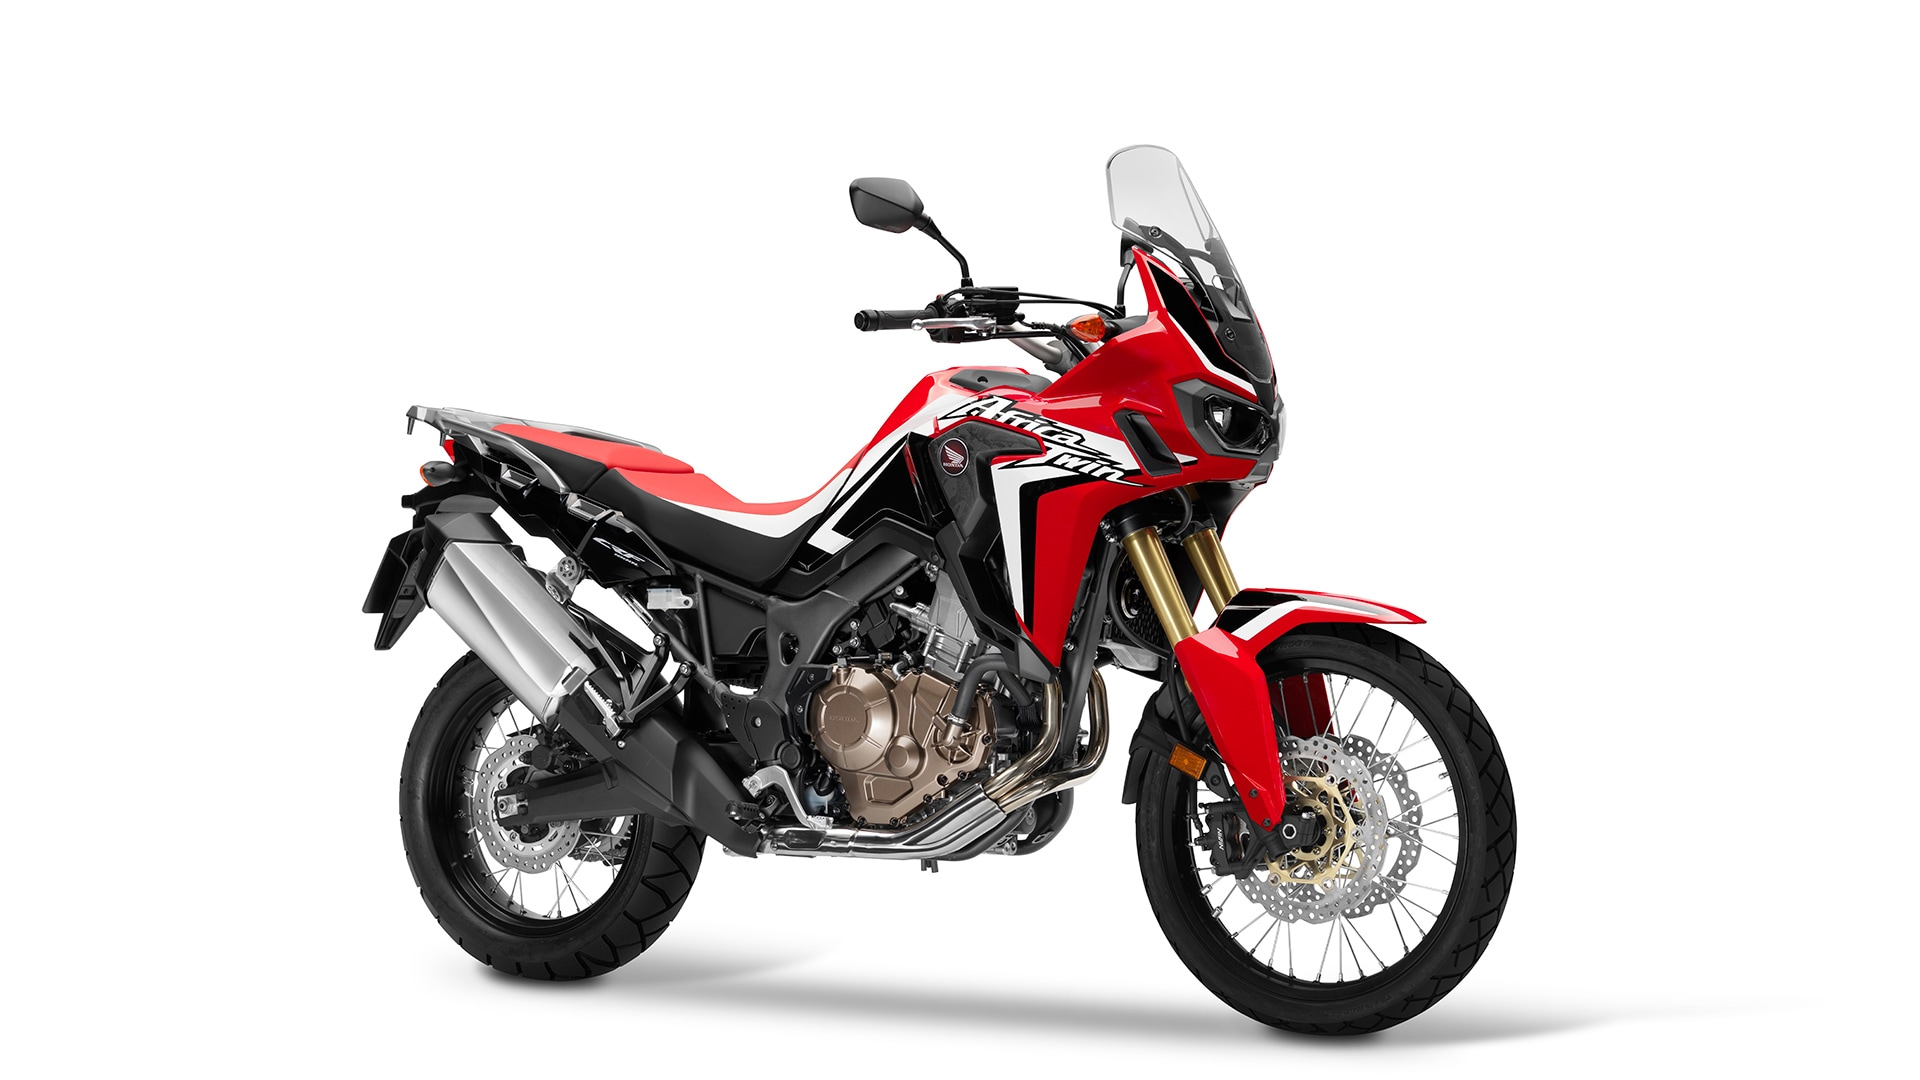 i rode the africa twin honda crf1000l africa twin forum. Black Bedroom Furniture Sets. Home Design Ideas